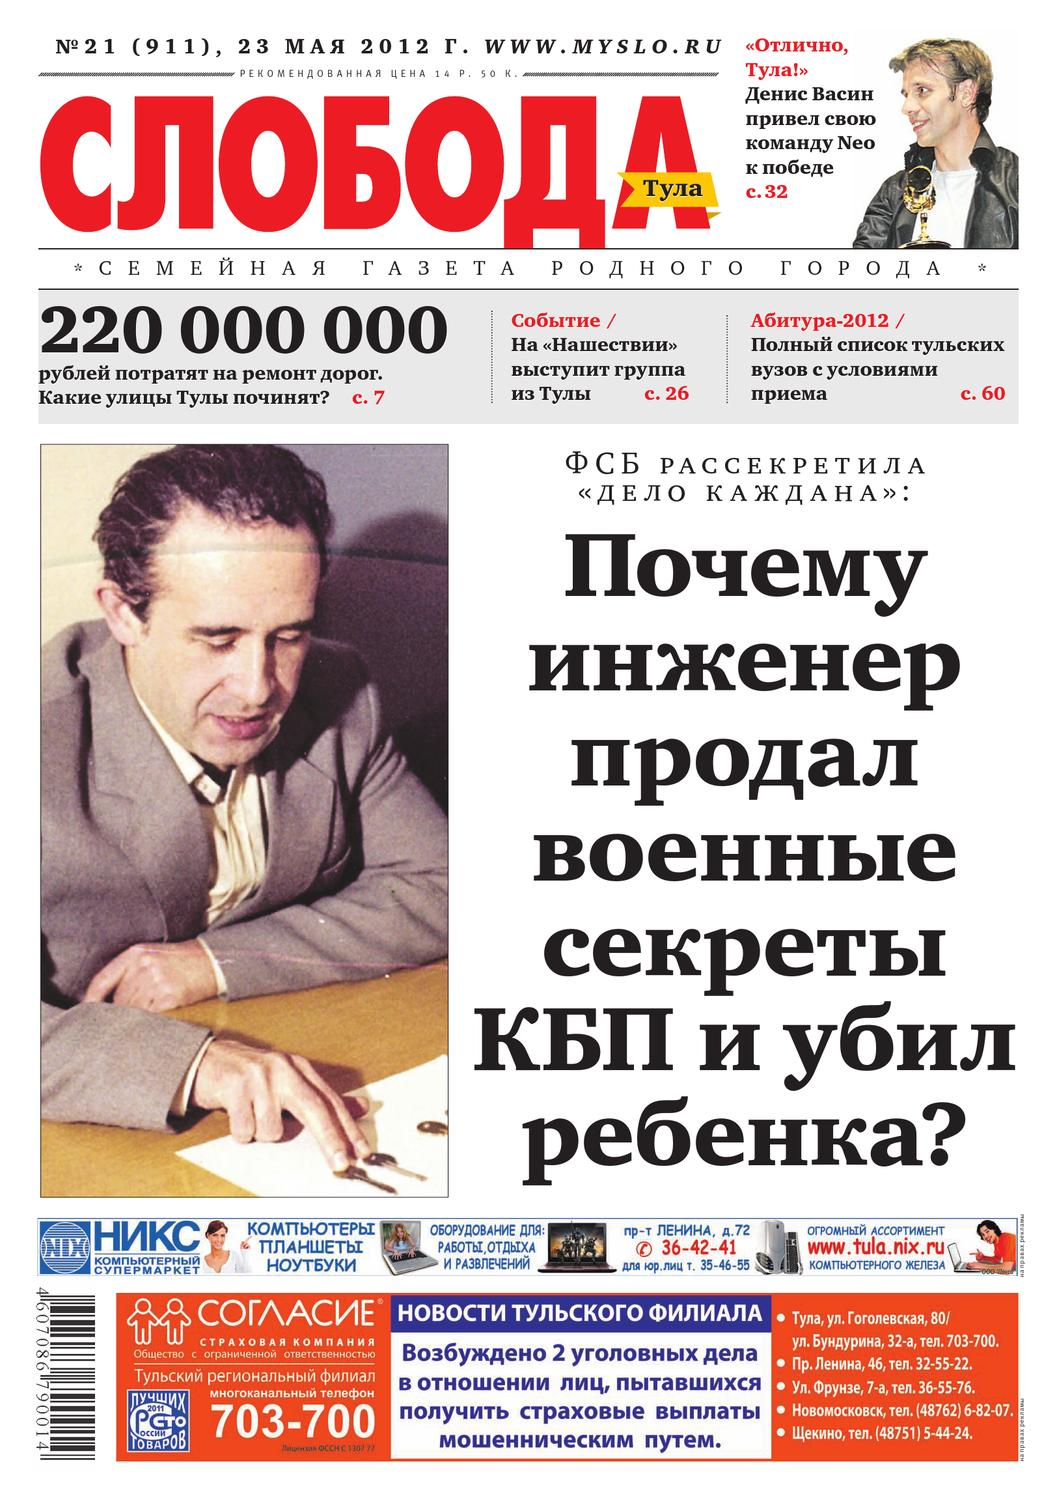 """N19_909_2012 by Газета """"Слобода"""" - issuu"""